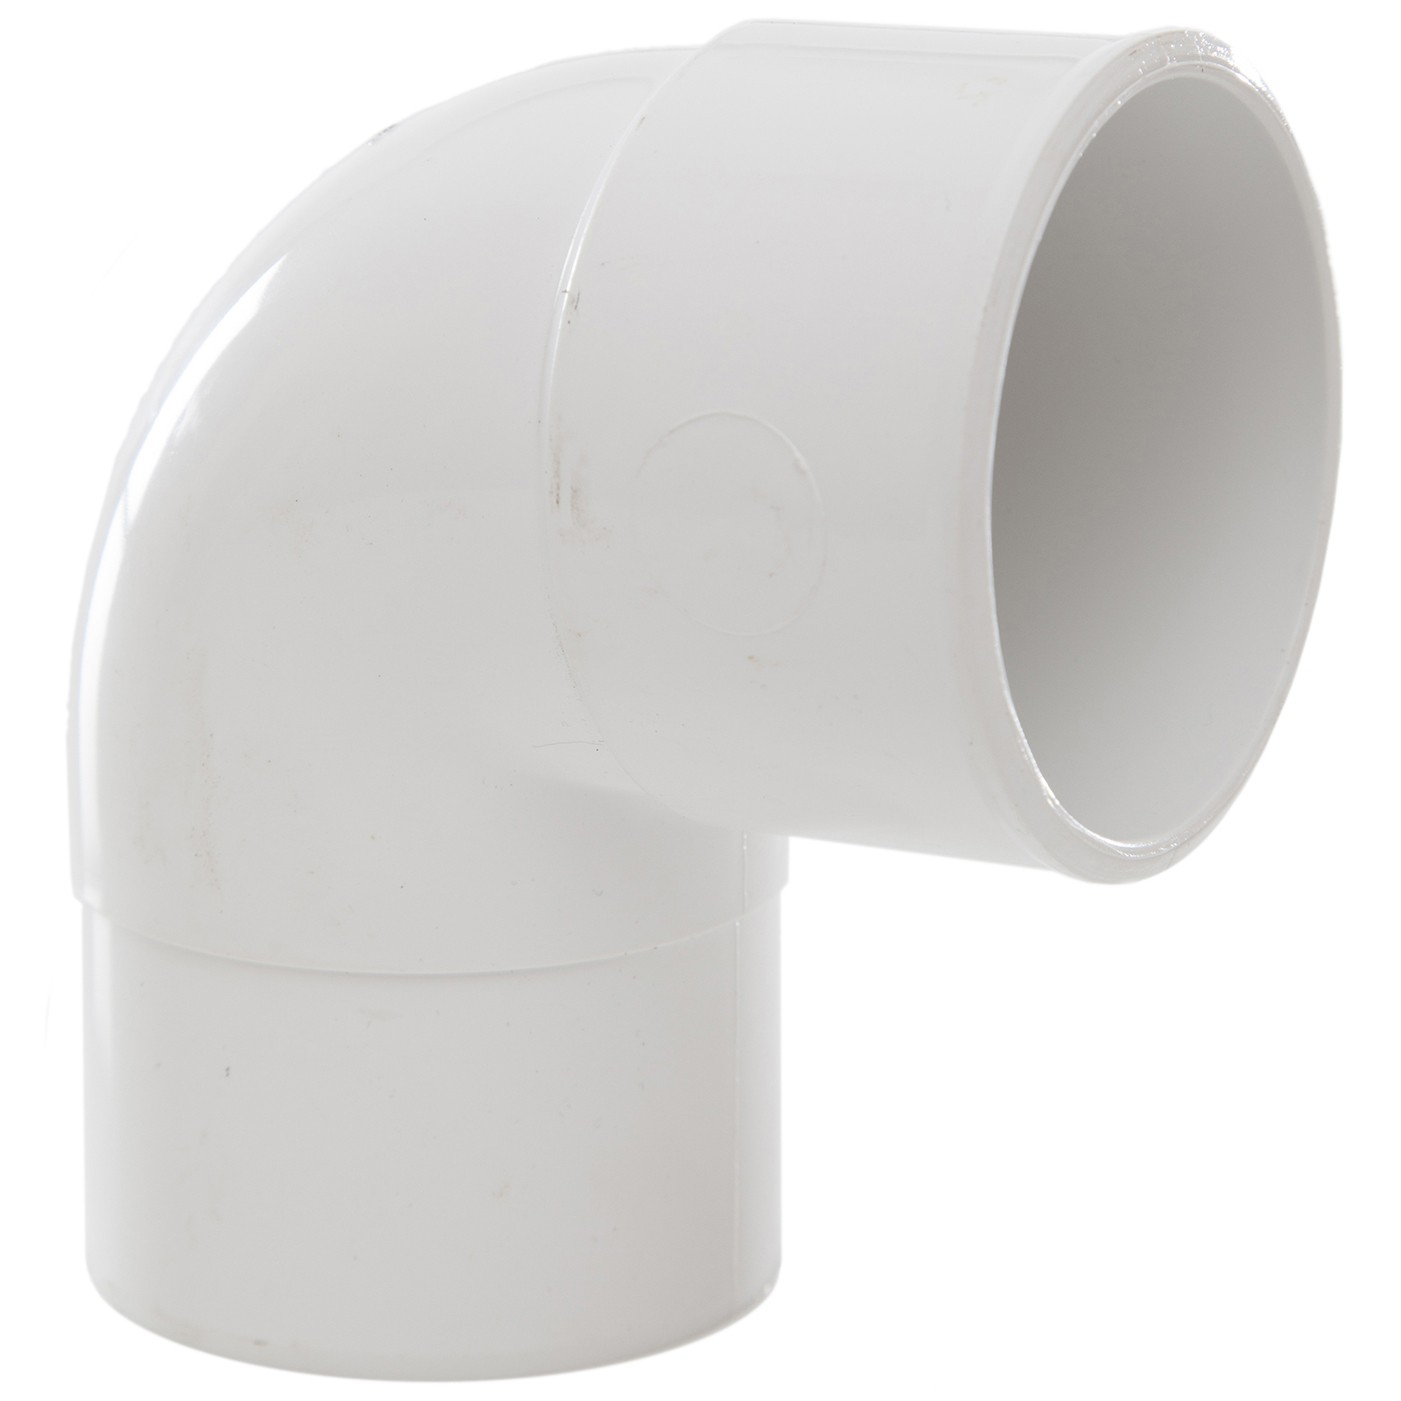 Polypipe 50mm Solvent Weld Waste 92.5 Degree Swivel Bend - White